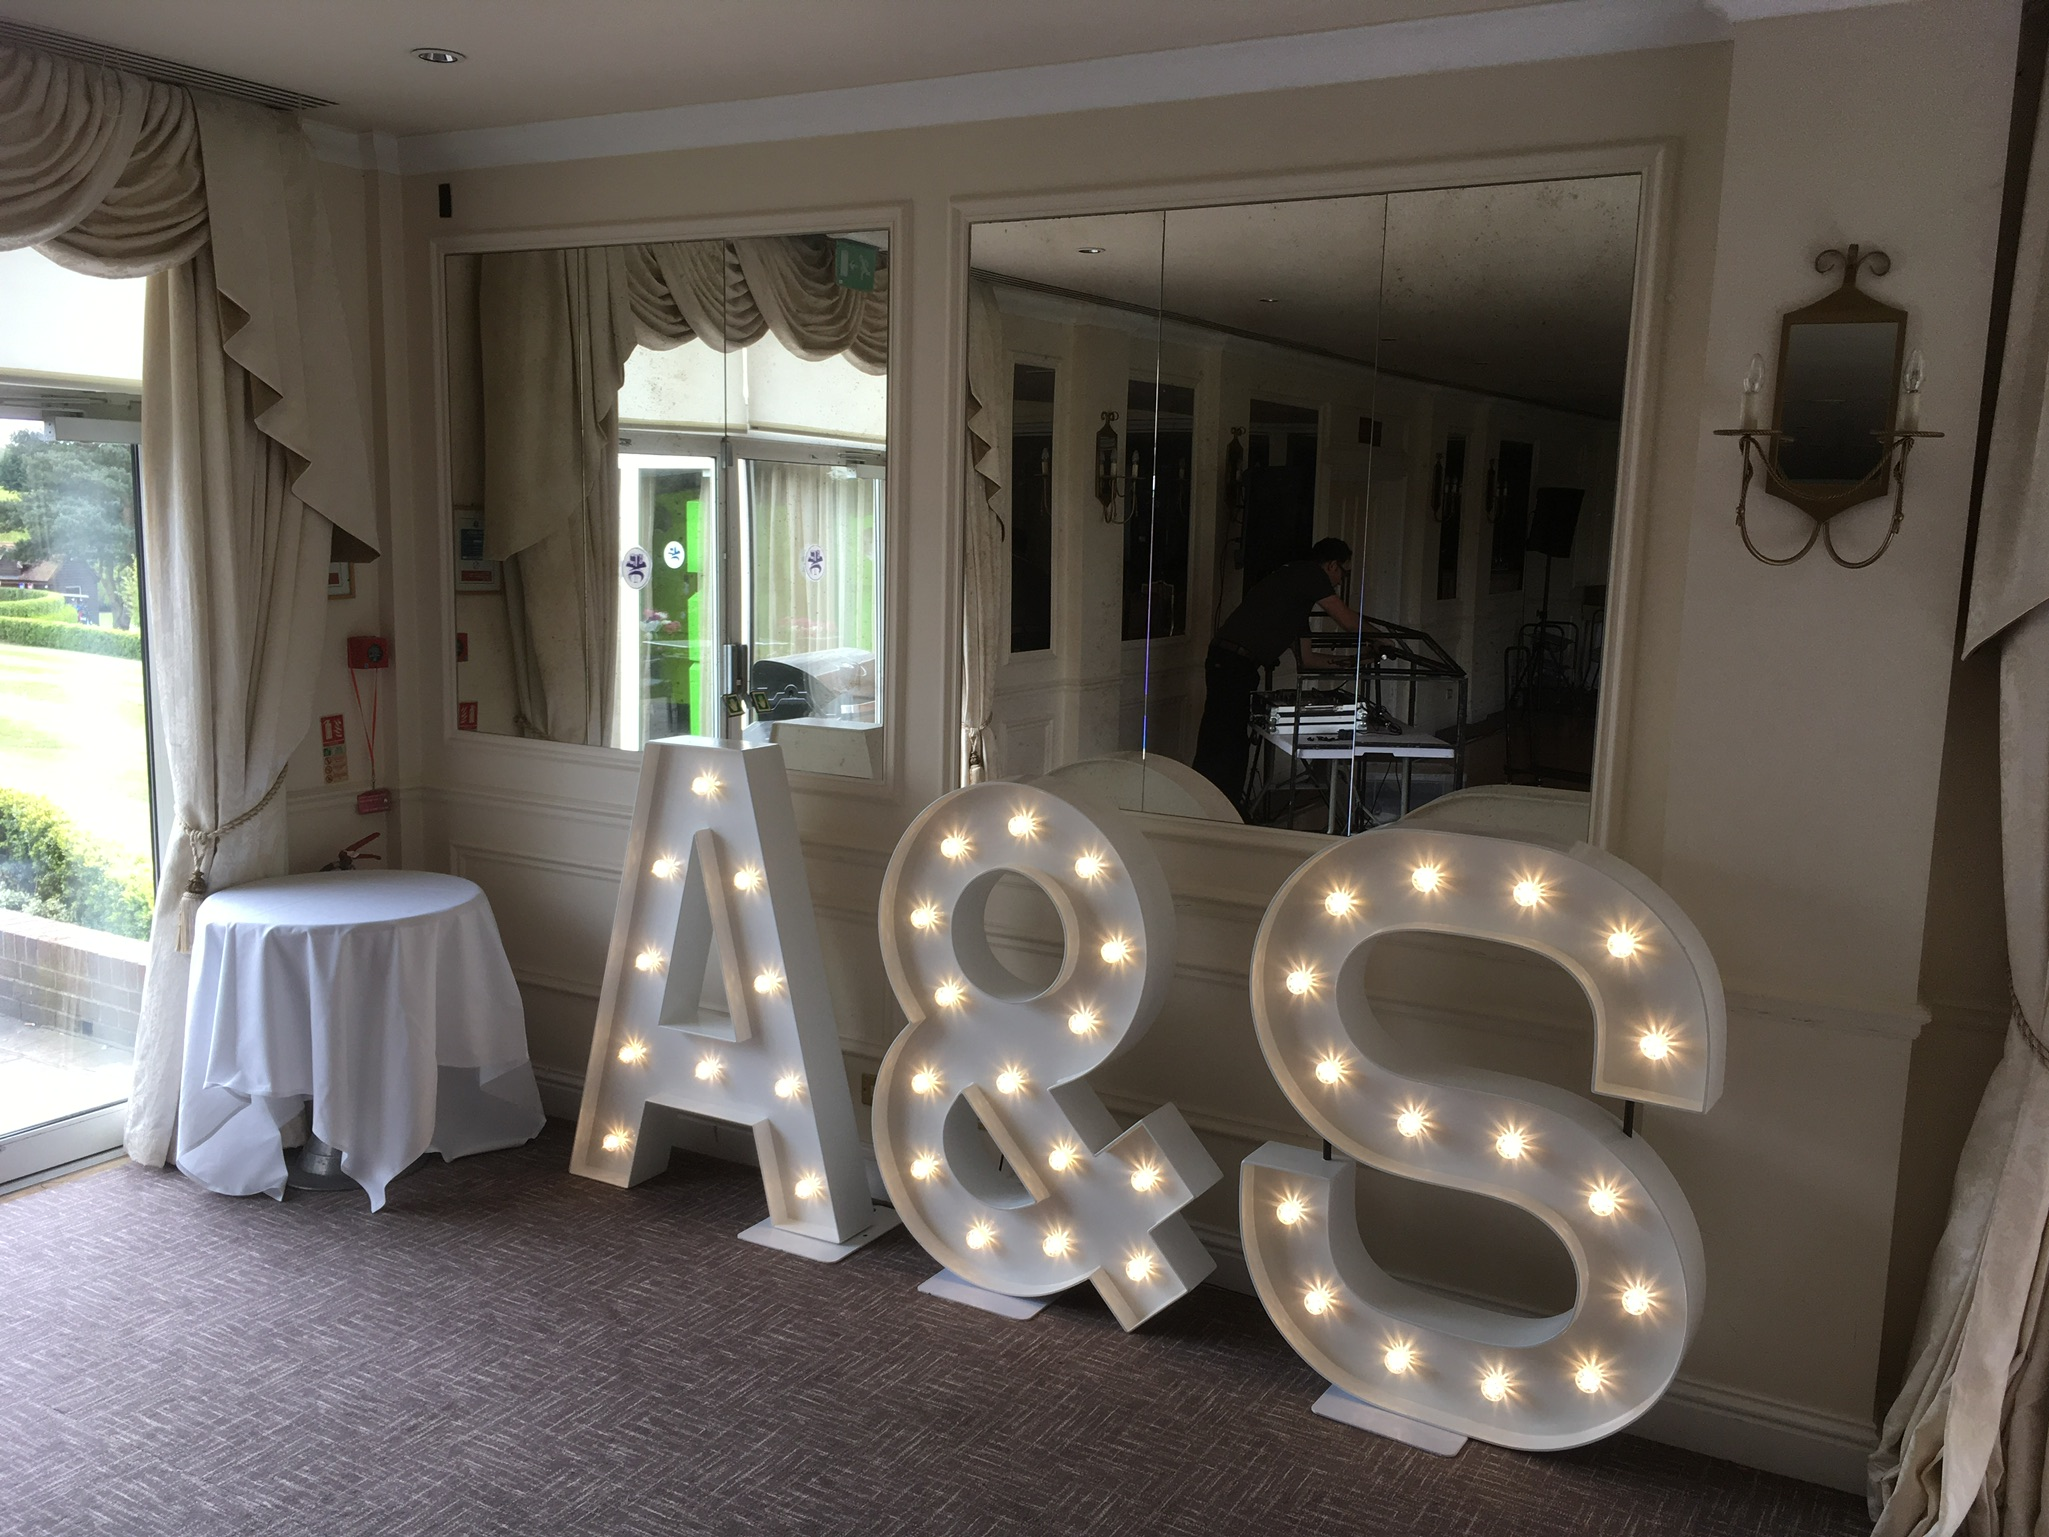 letters @ Stoke by Nayland Golf Club